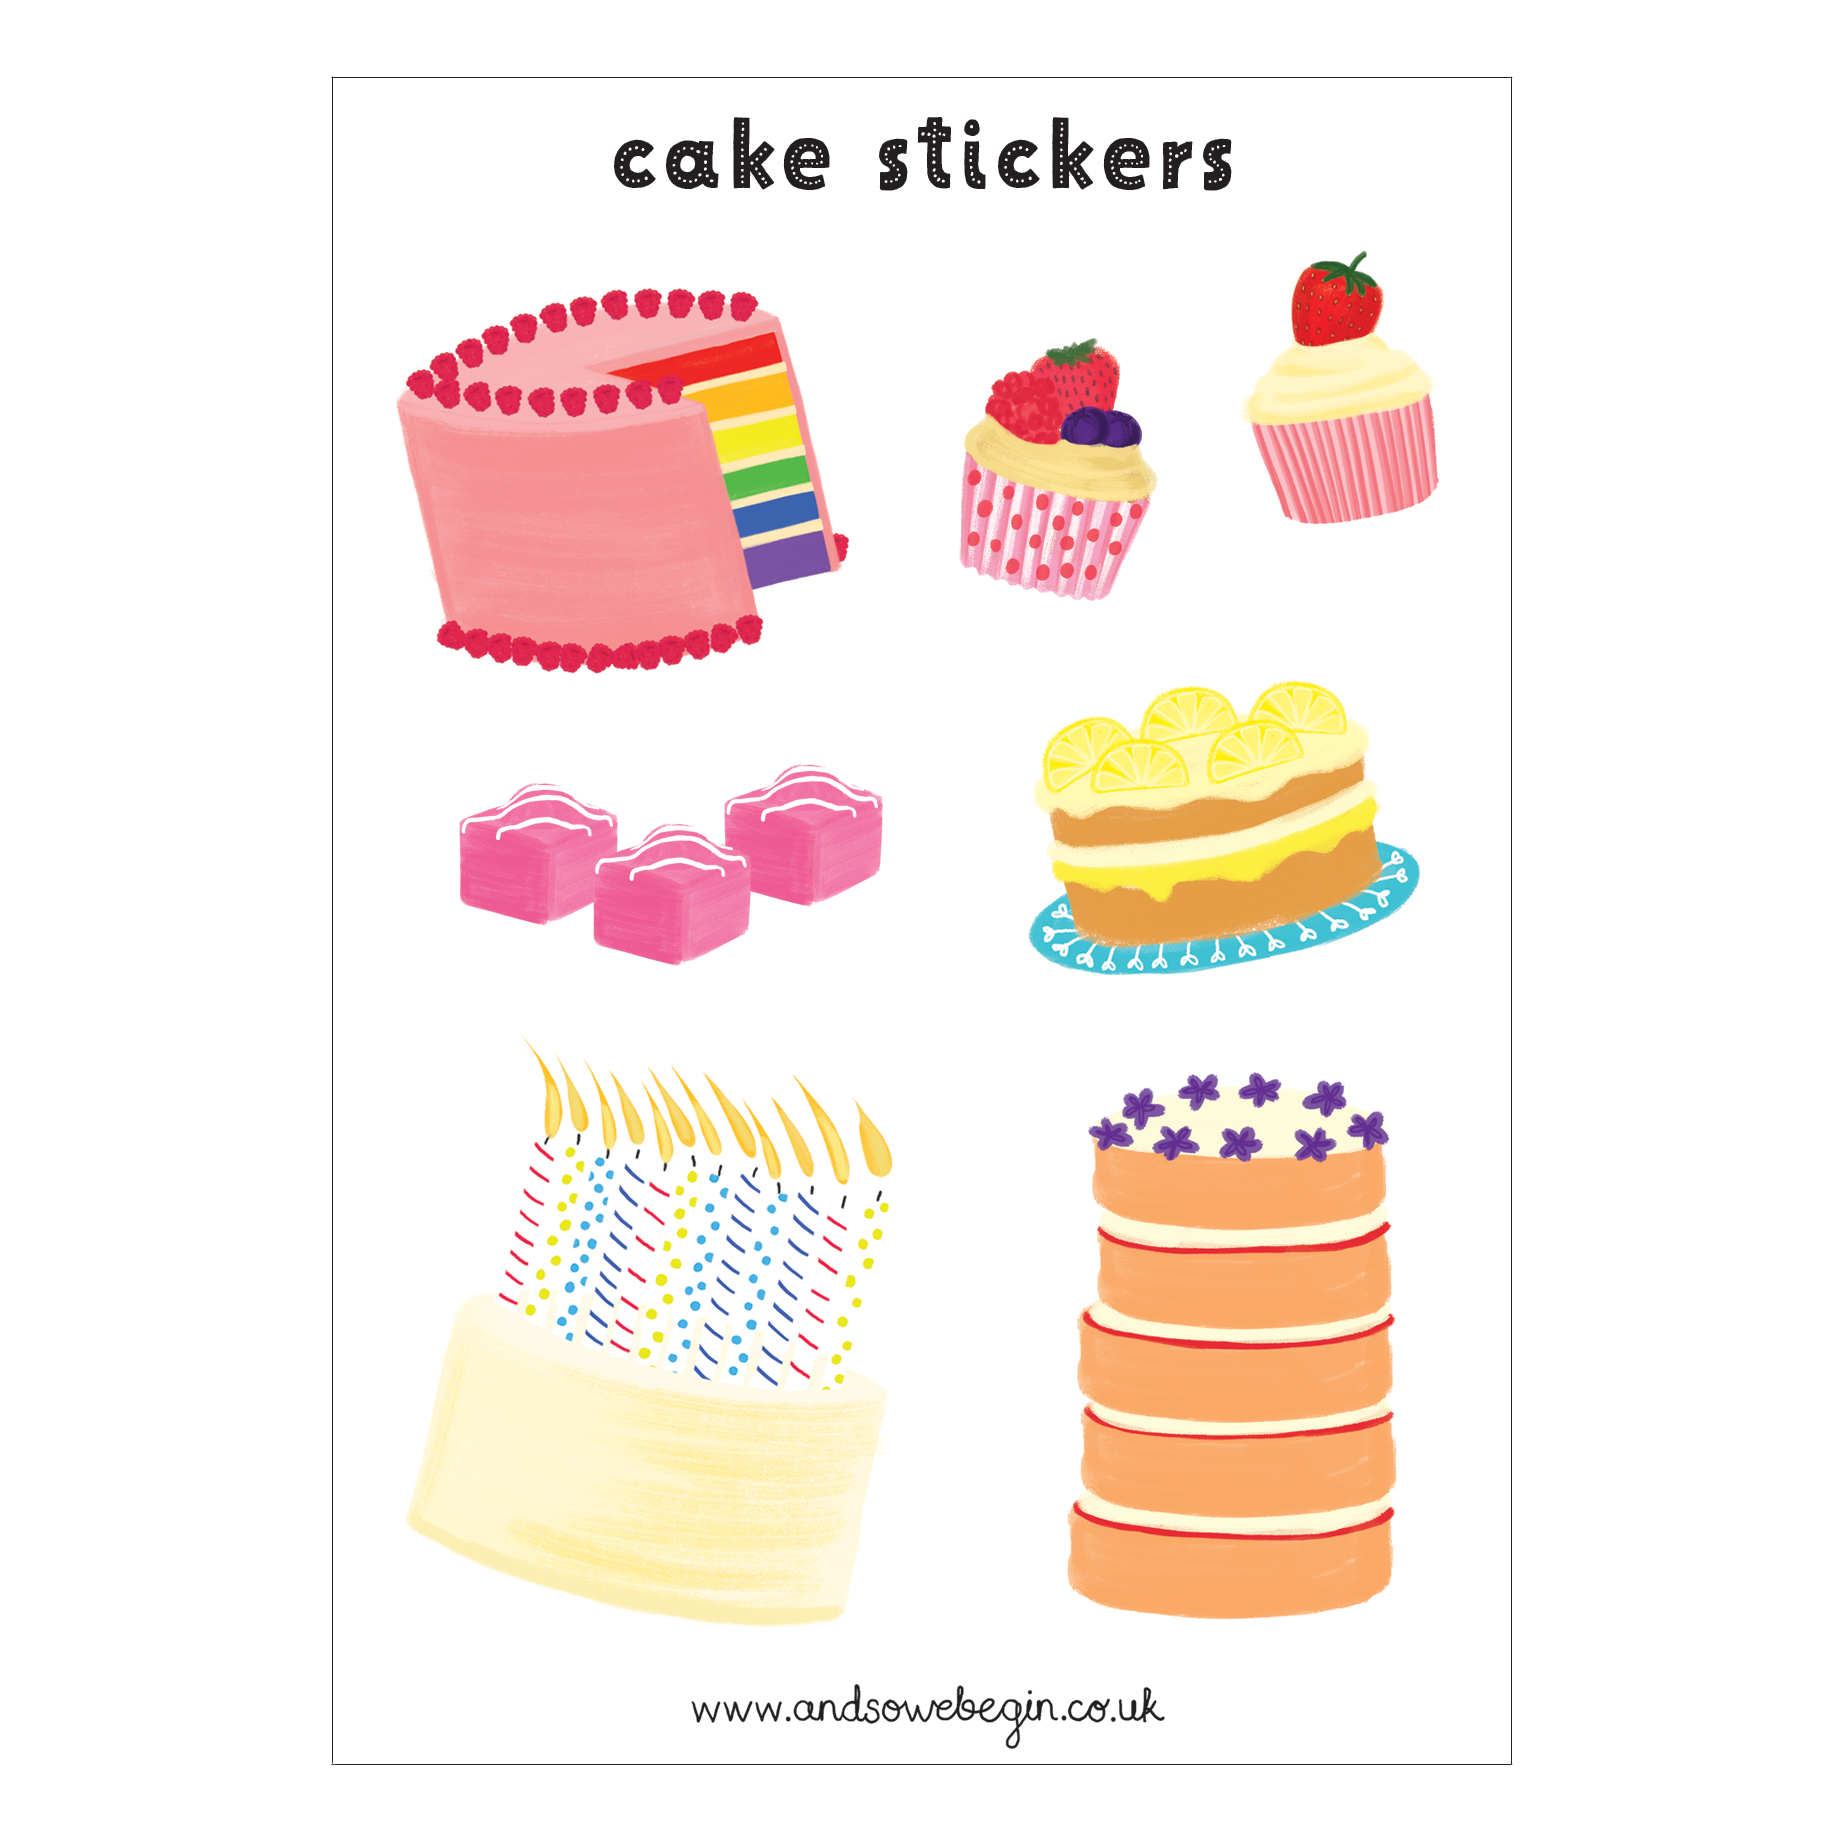 cakestickerssquare.png